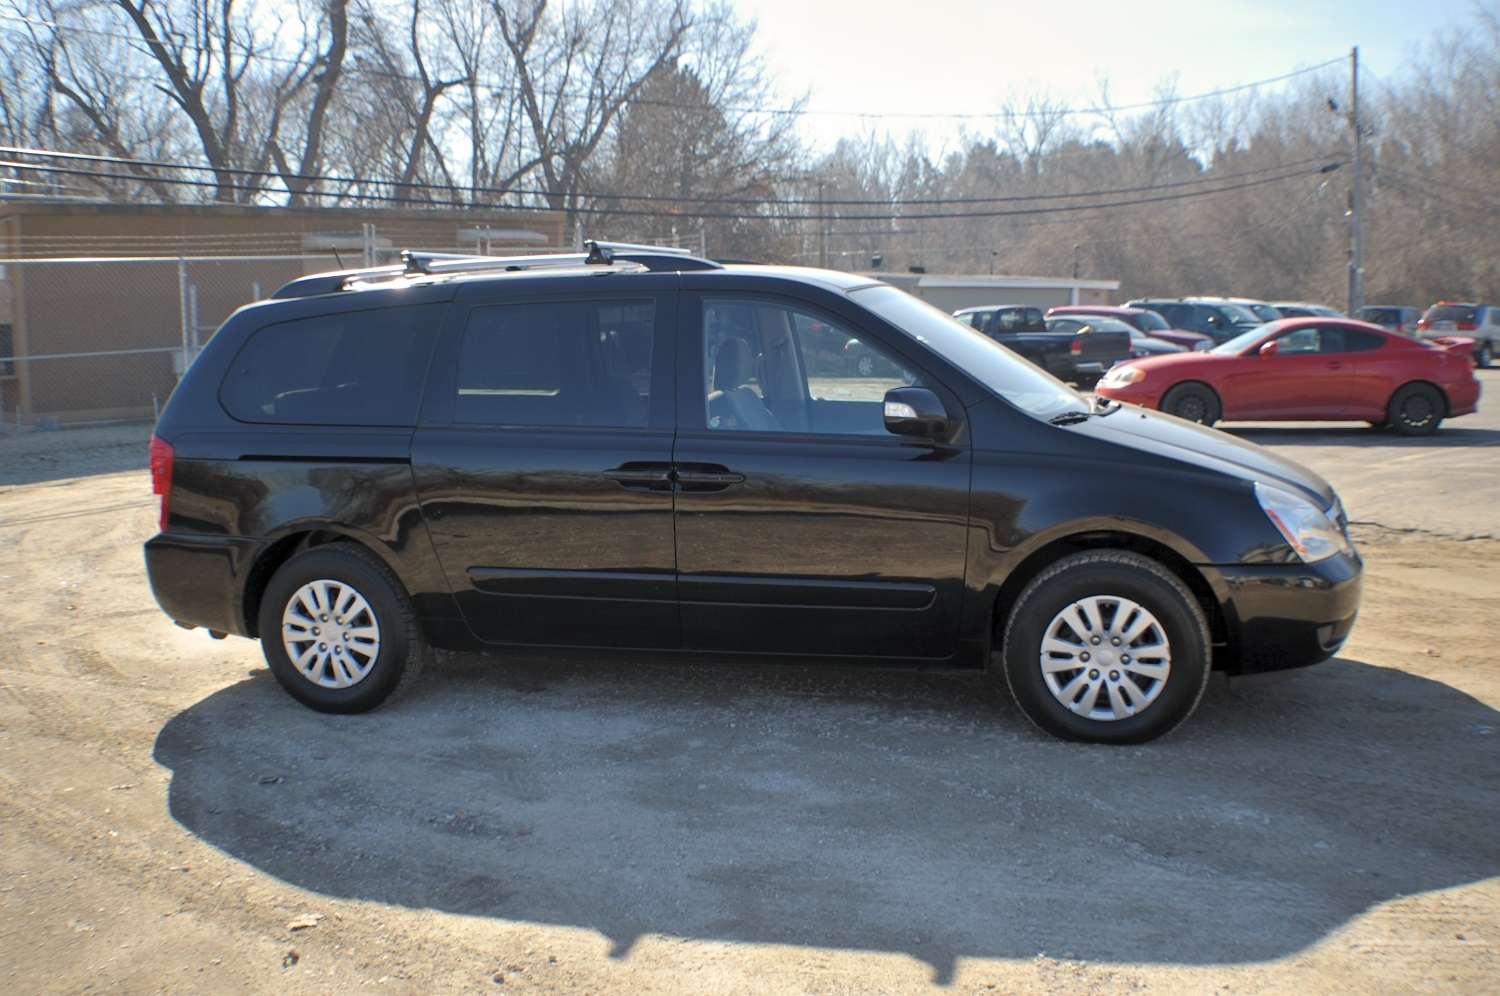 2011 Kia Sedona Black Family Mini Van Sale Bannockburn Barrington Beach Park